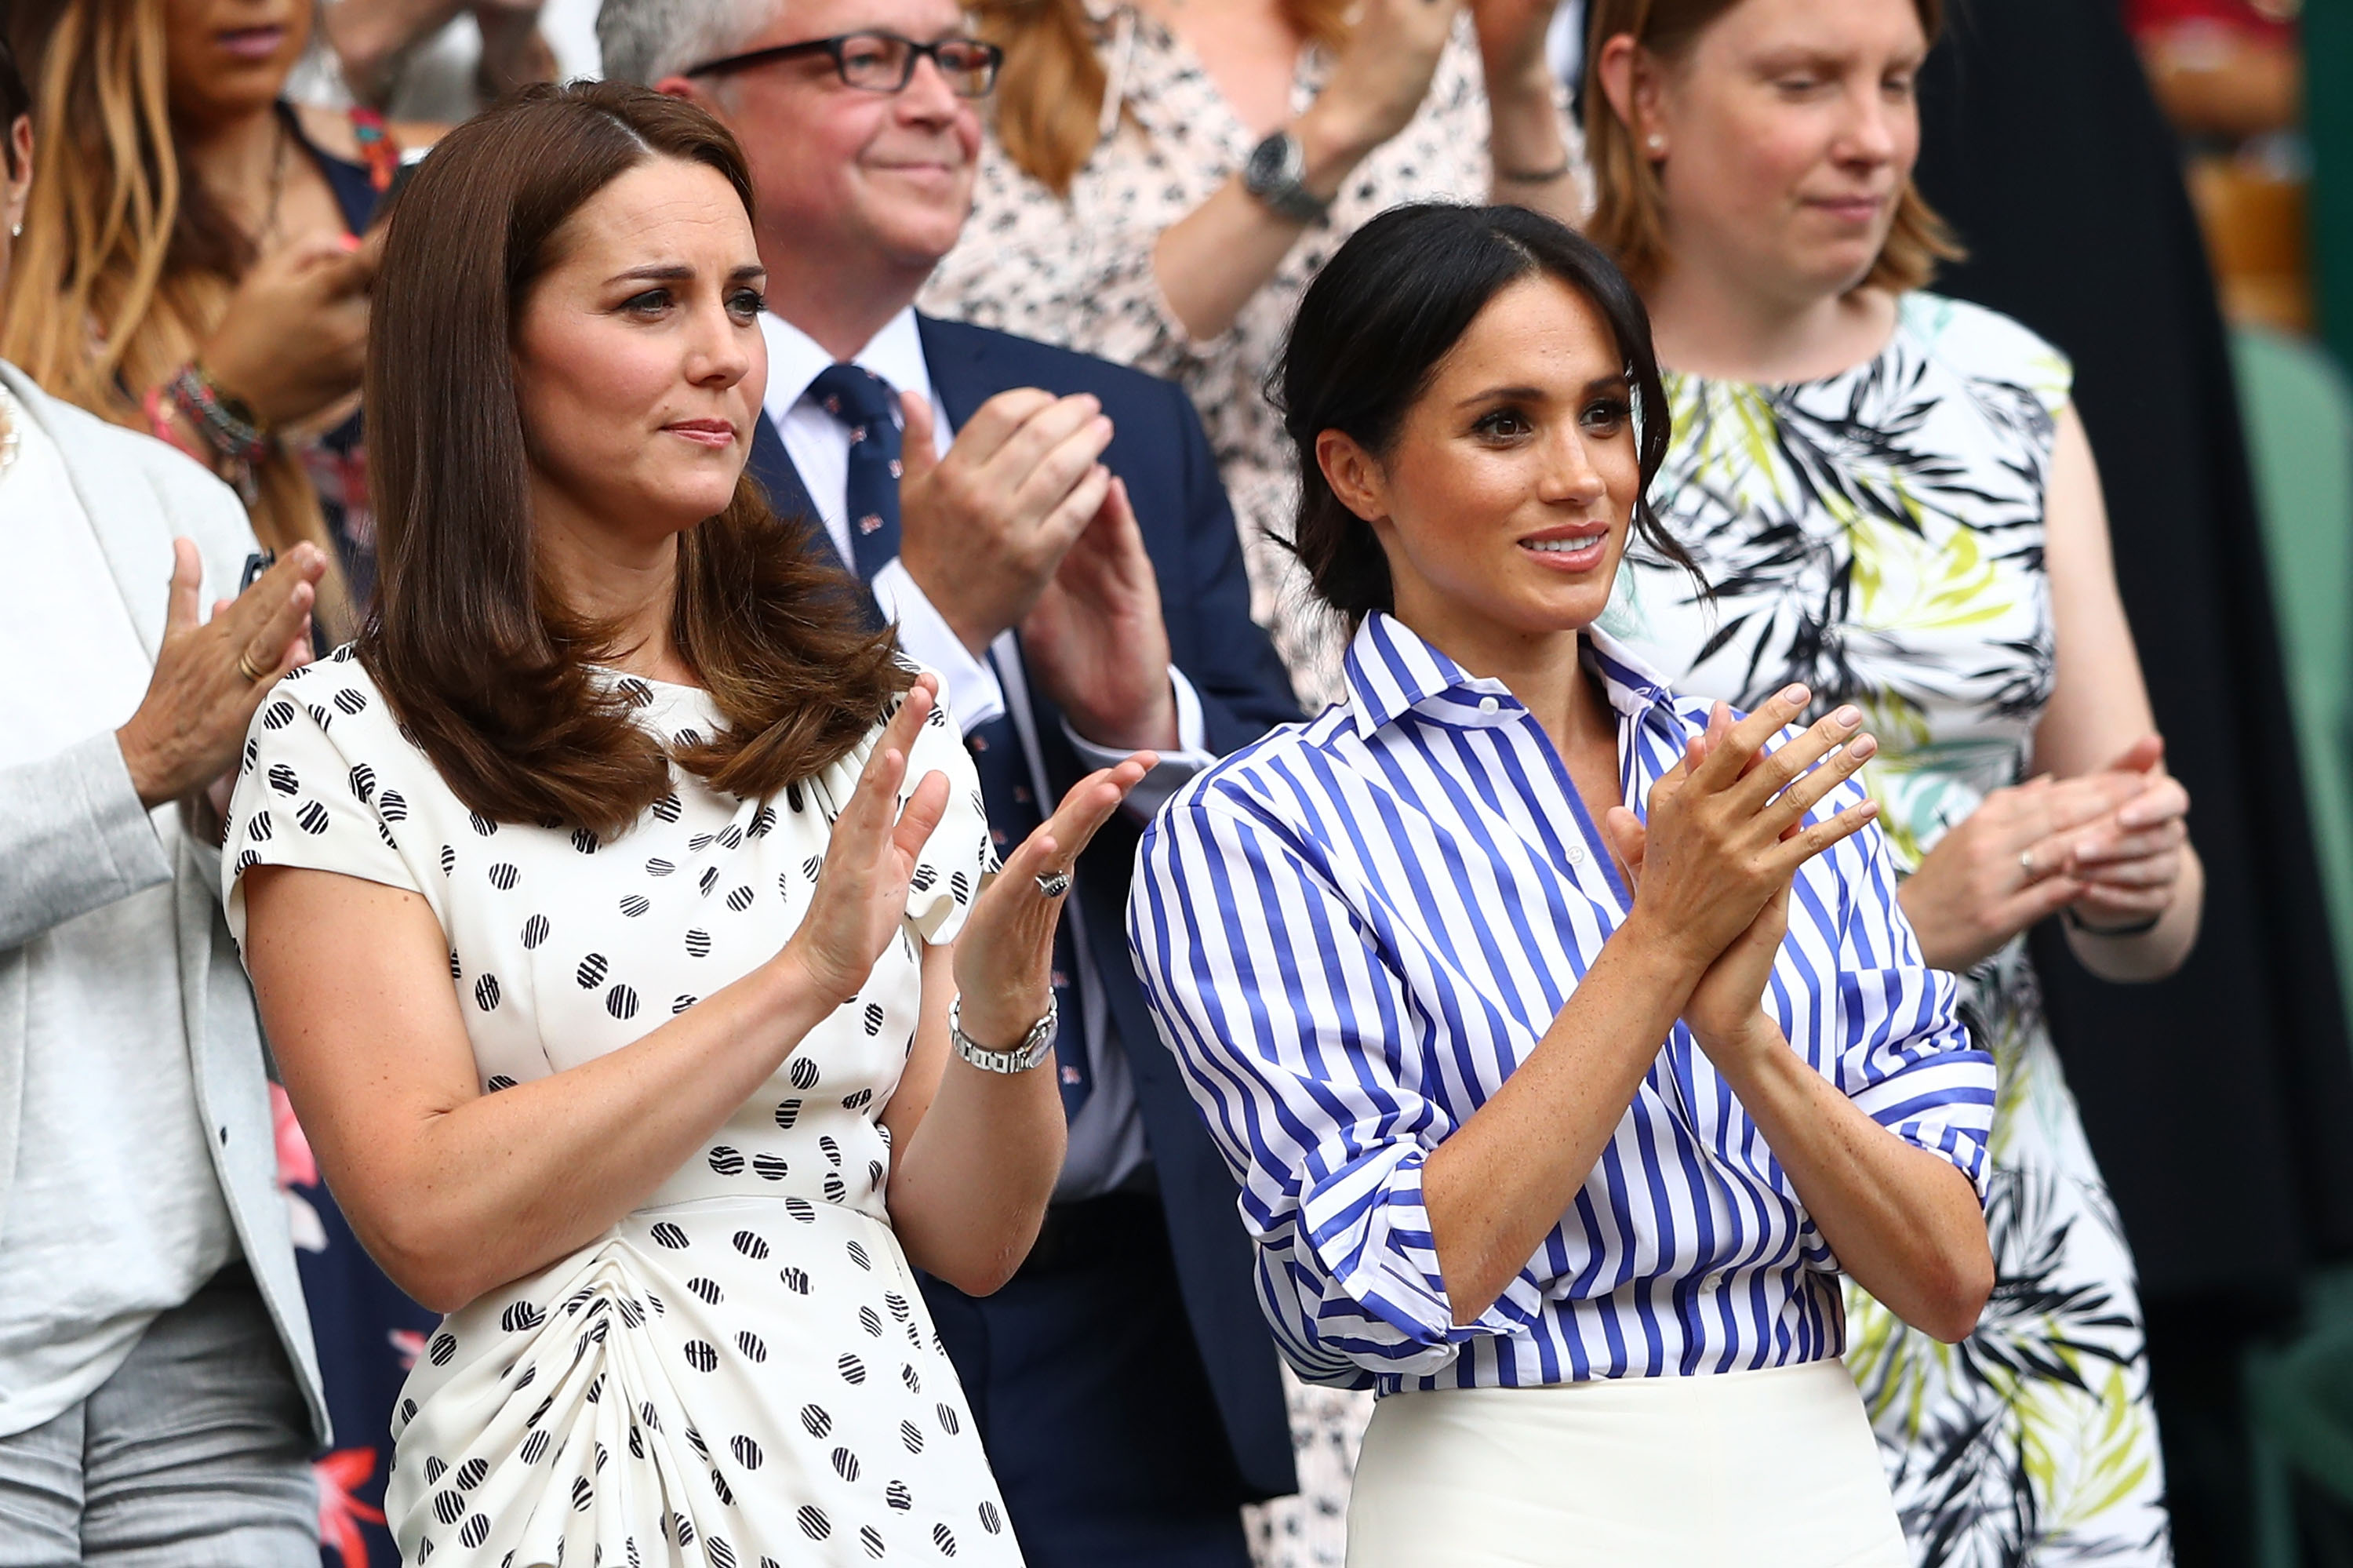 LONDON, ENGLAND - JULY 14: Catherine, Duchess of Cambridge and Meghan, Duchess of Sussex applaud ahead of the Ladies' Singles final match between Serena Williams of The United States and Angelique Kerber of Germany on day twelve of the Wimbledon Lawn Tennis Championships at All England Lawn Tennis and Croquet Club on July 14, 2018 in London, England. (Photo by Michael Steele/Getty Images)